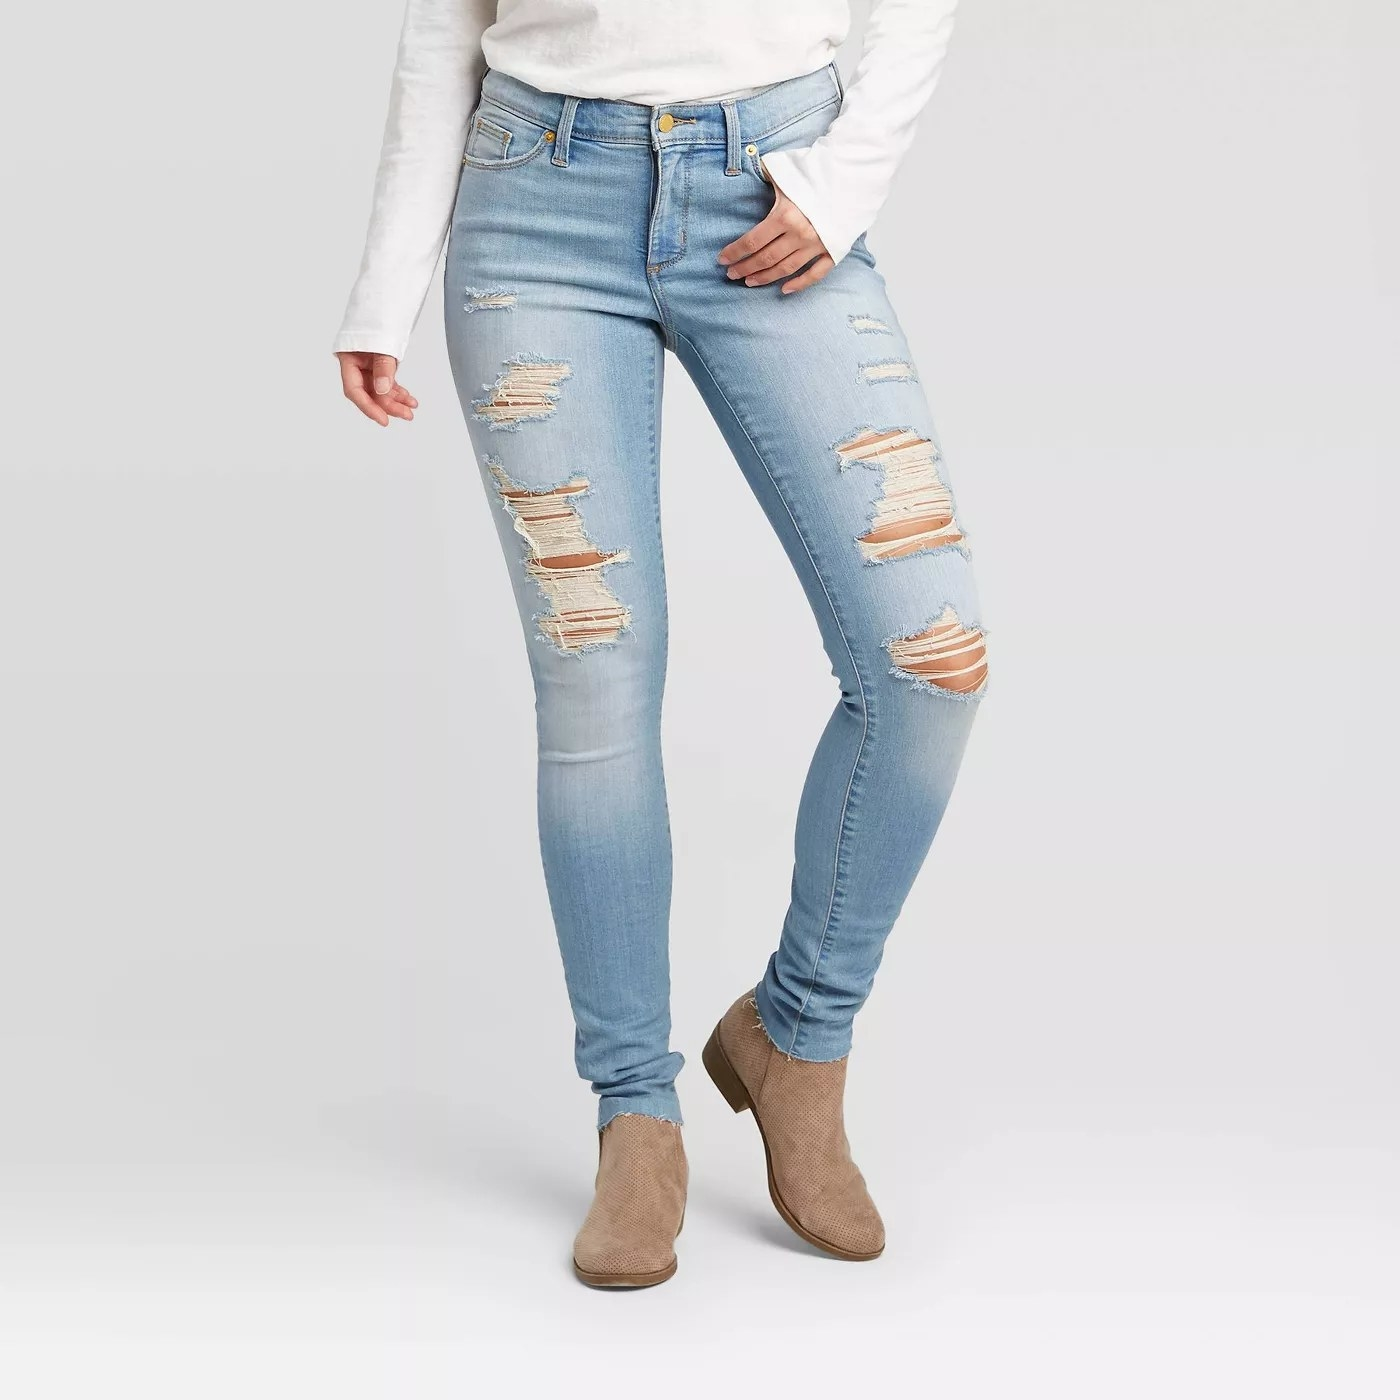 A model wearing distressed, light-wash jeans